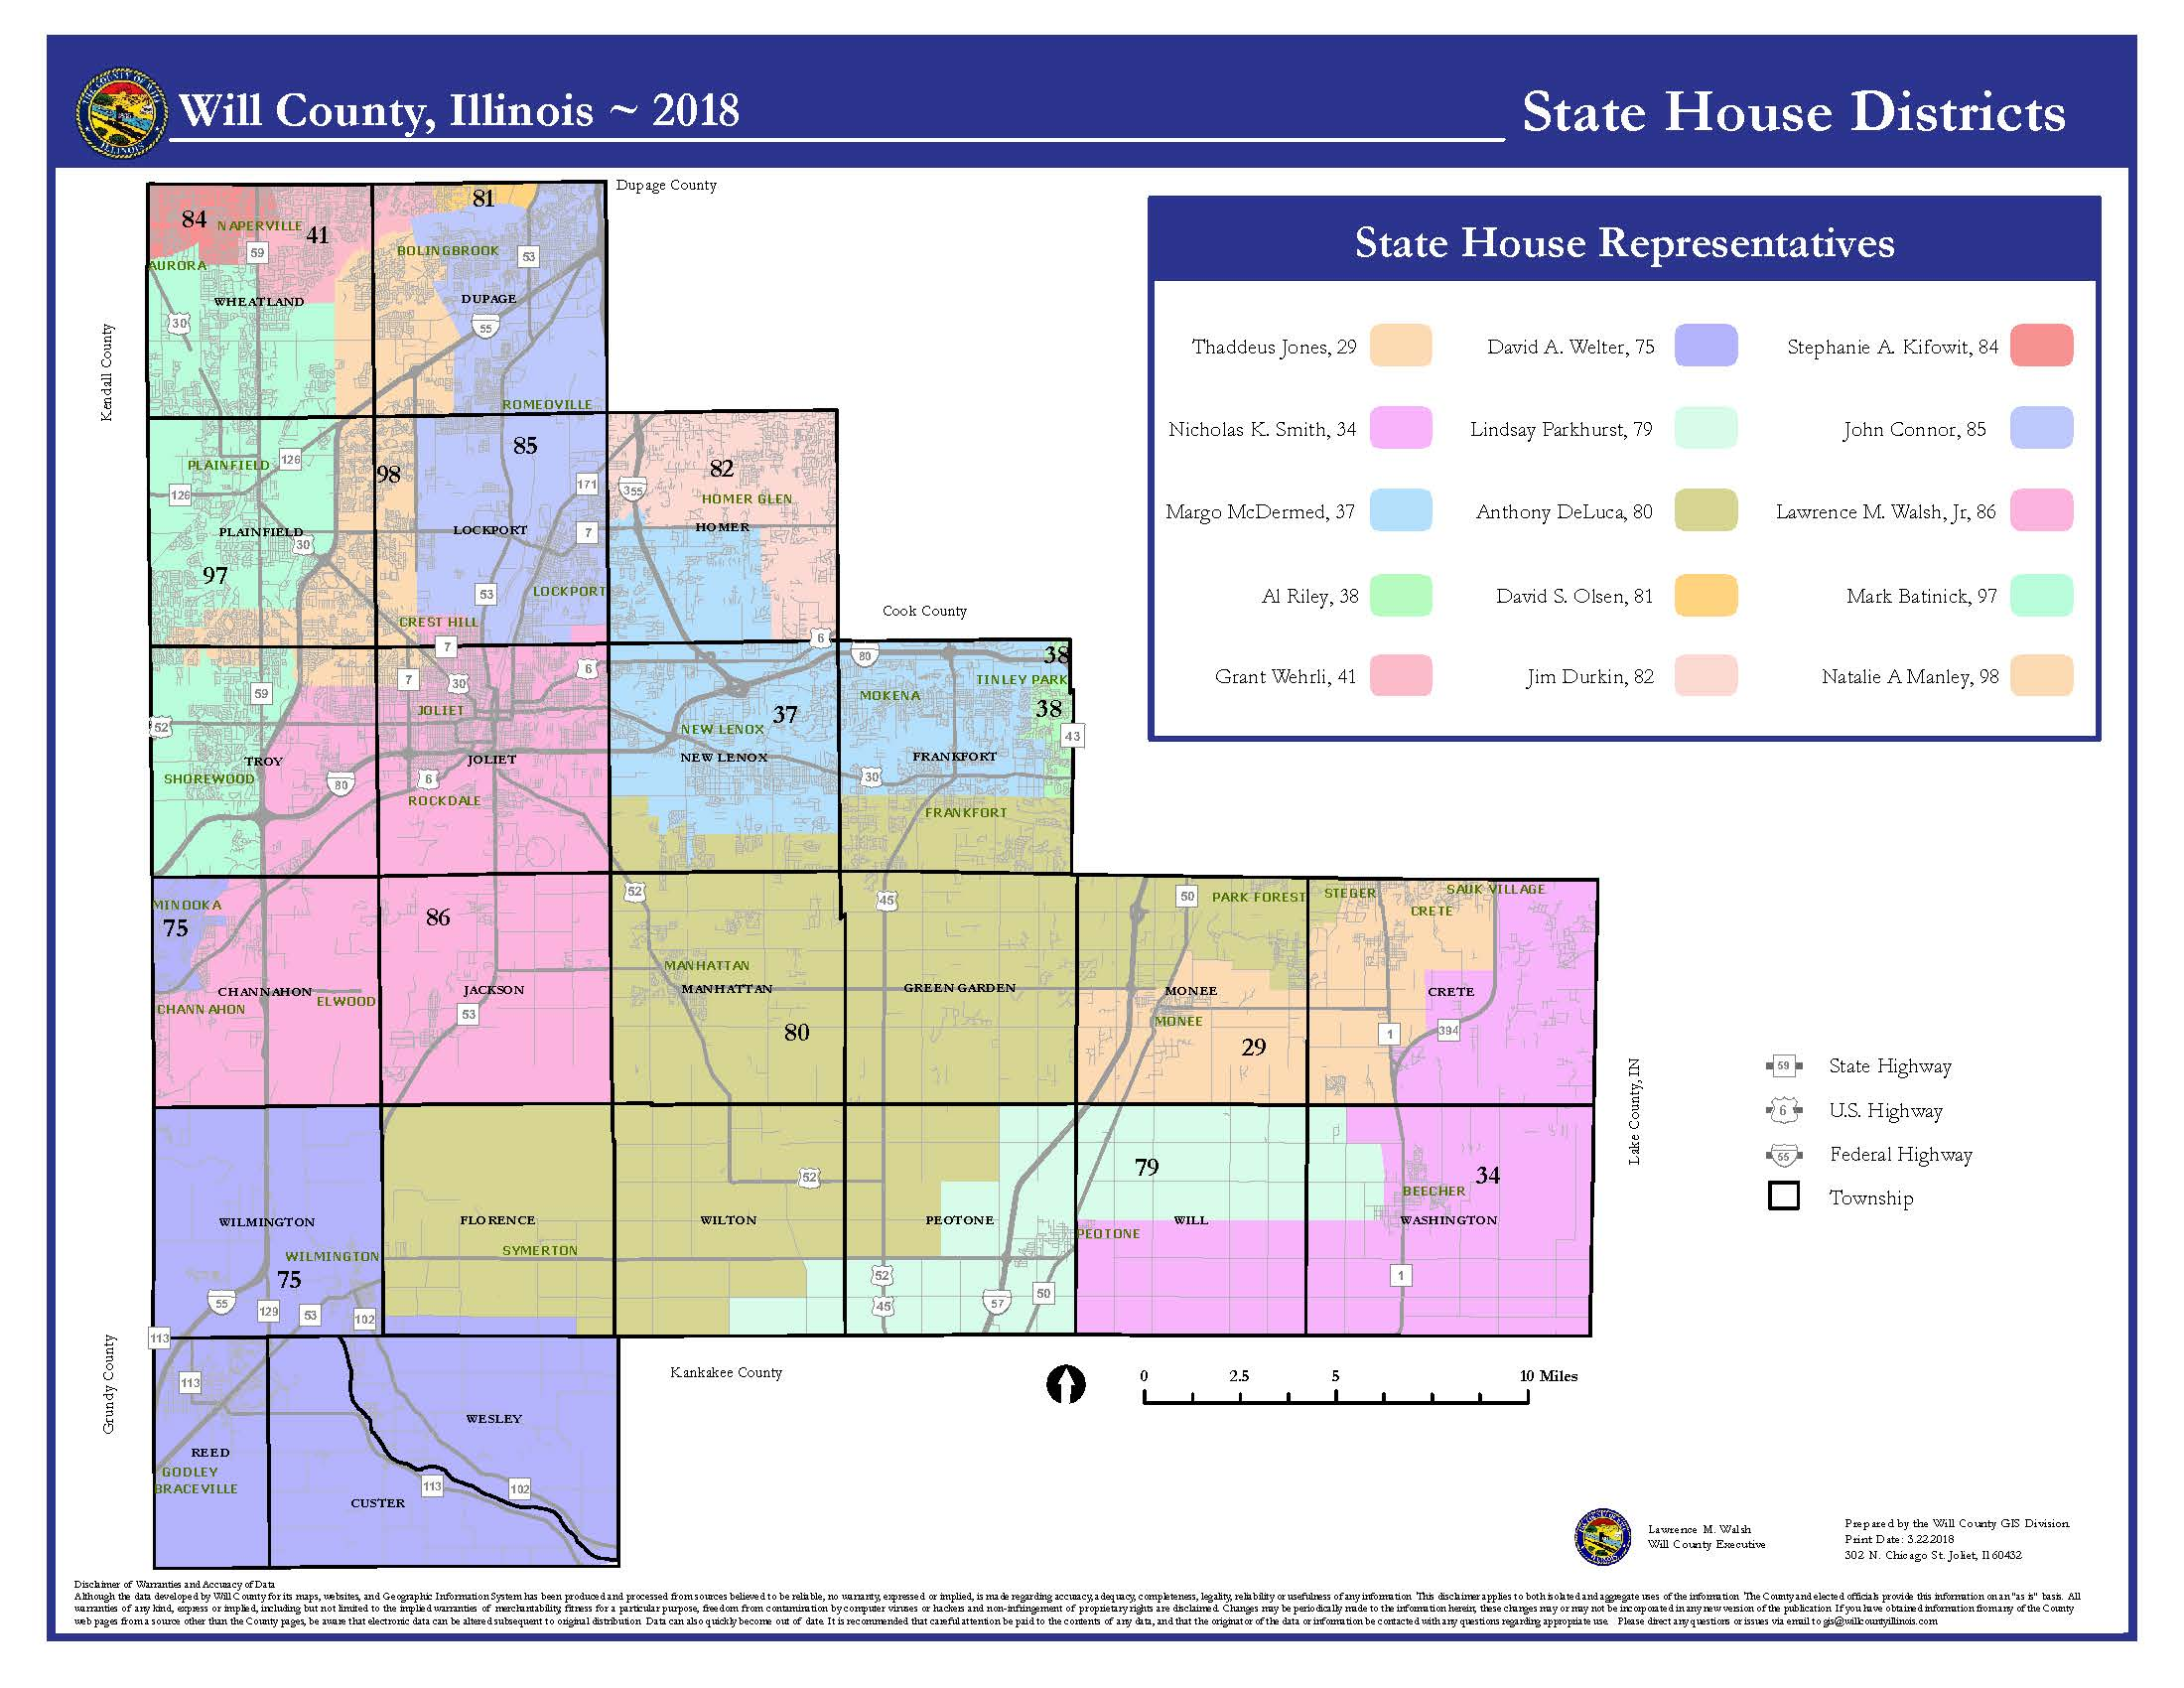 Will County Illinois State Senate District map 8x11